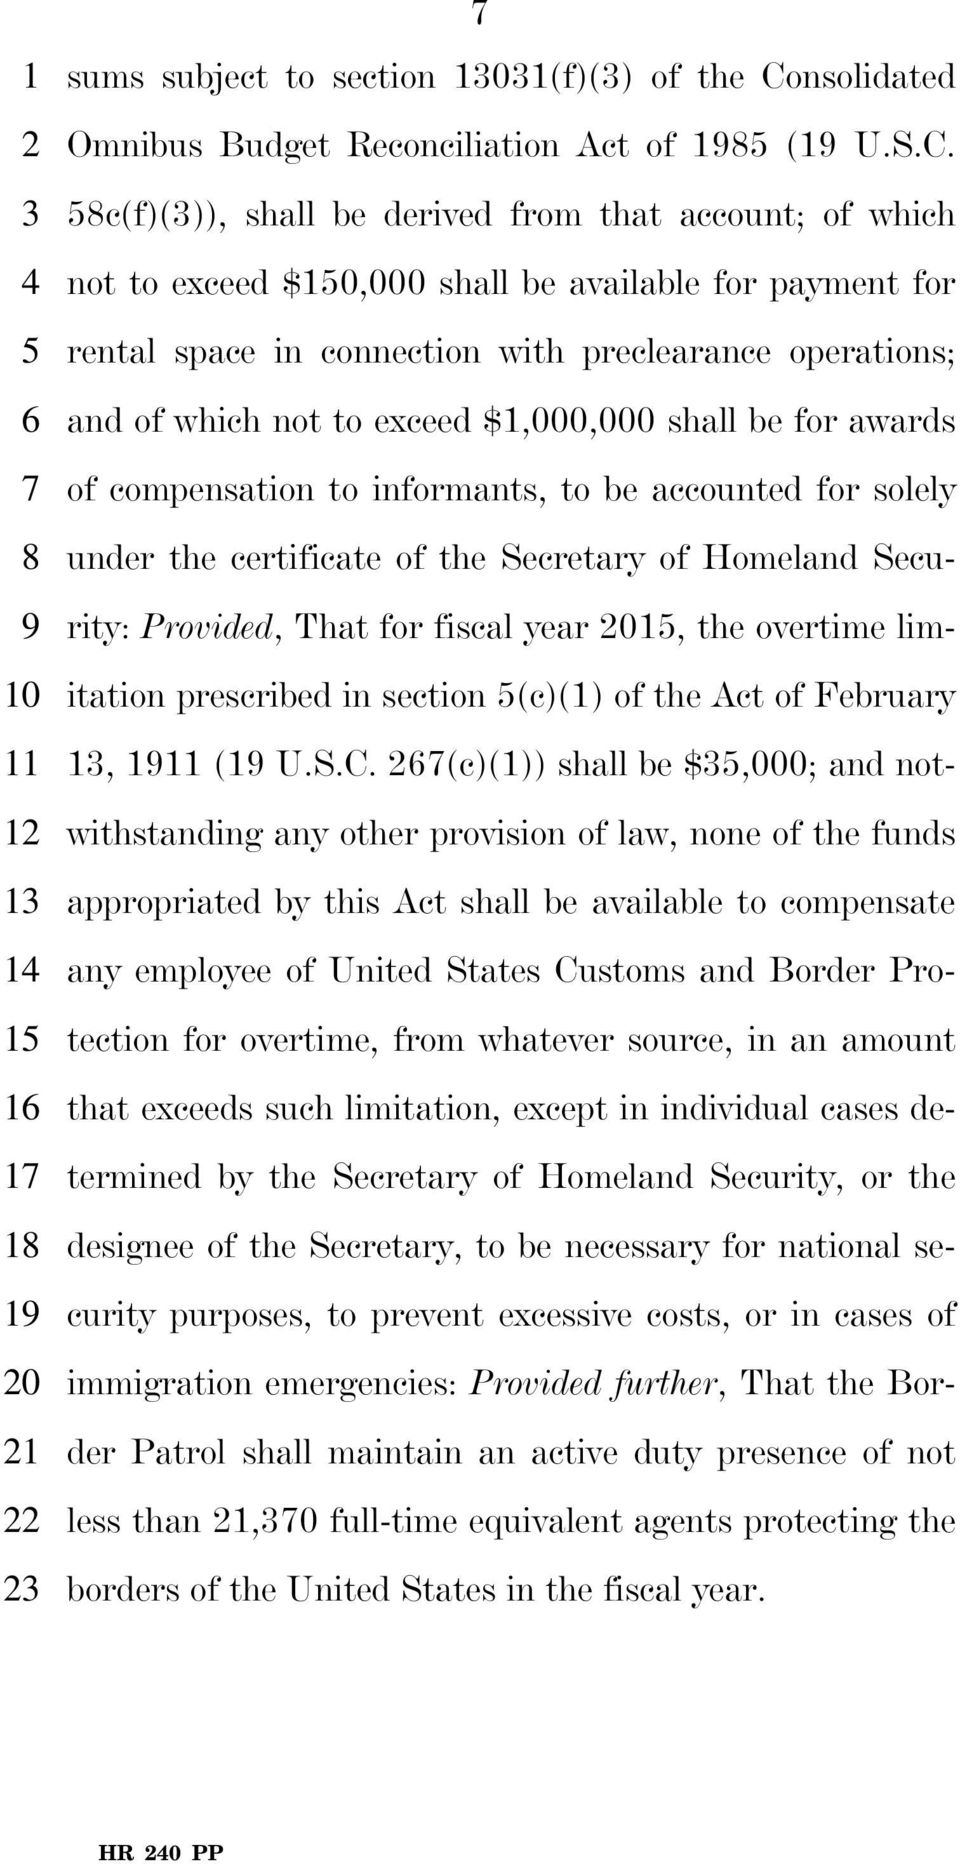 58c(f)(3)), shall be derived from that account; of which not to exceed $150,000 shall be available for payment for rental space in connection with preclearance operations; and of which not to exceed